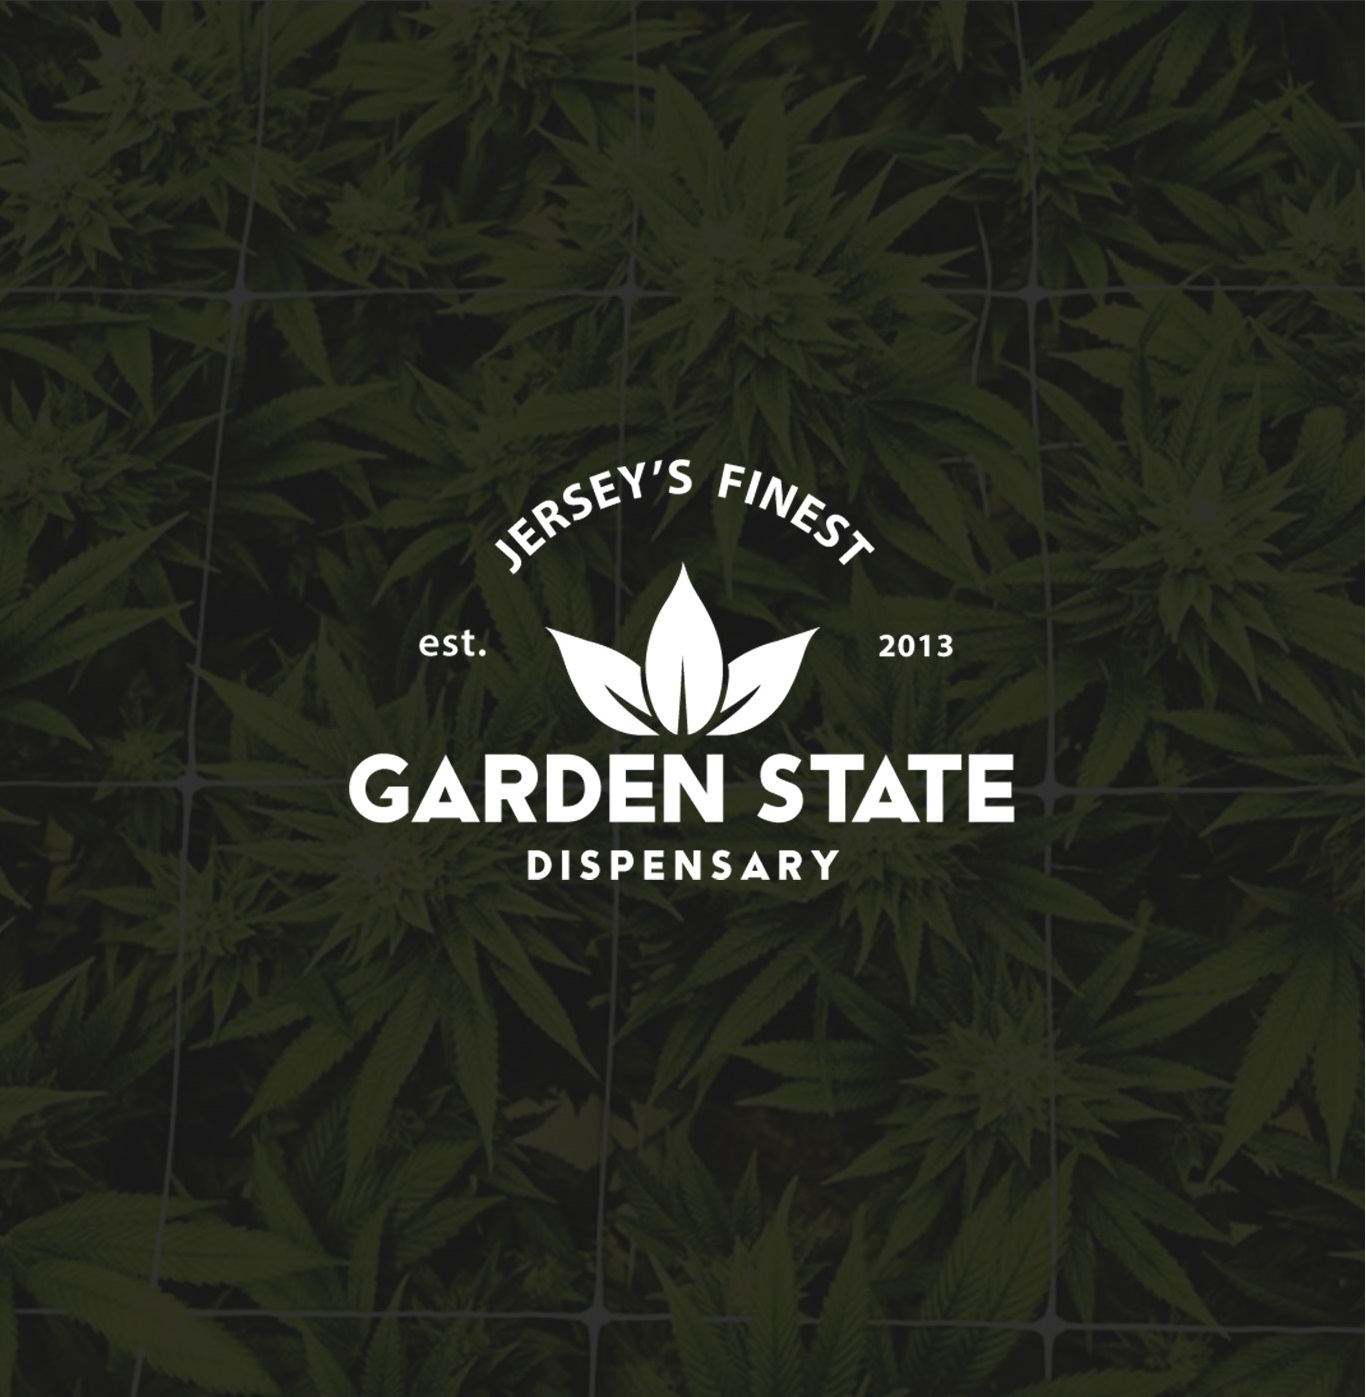 Logo Design For Garden State Dispensary Brands Of The World Download Vector Logos And Logotypes